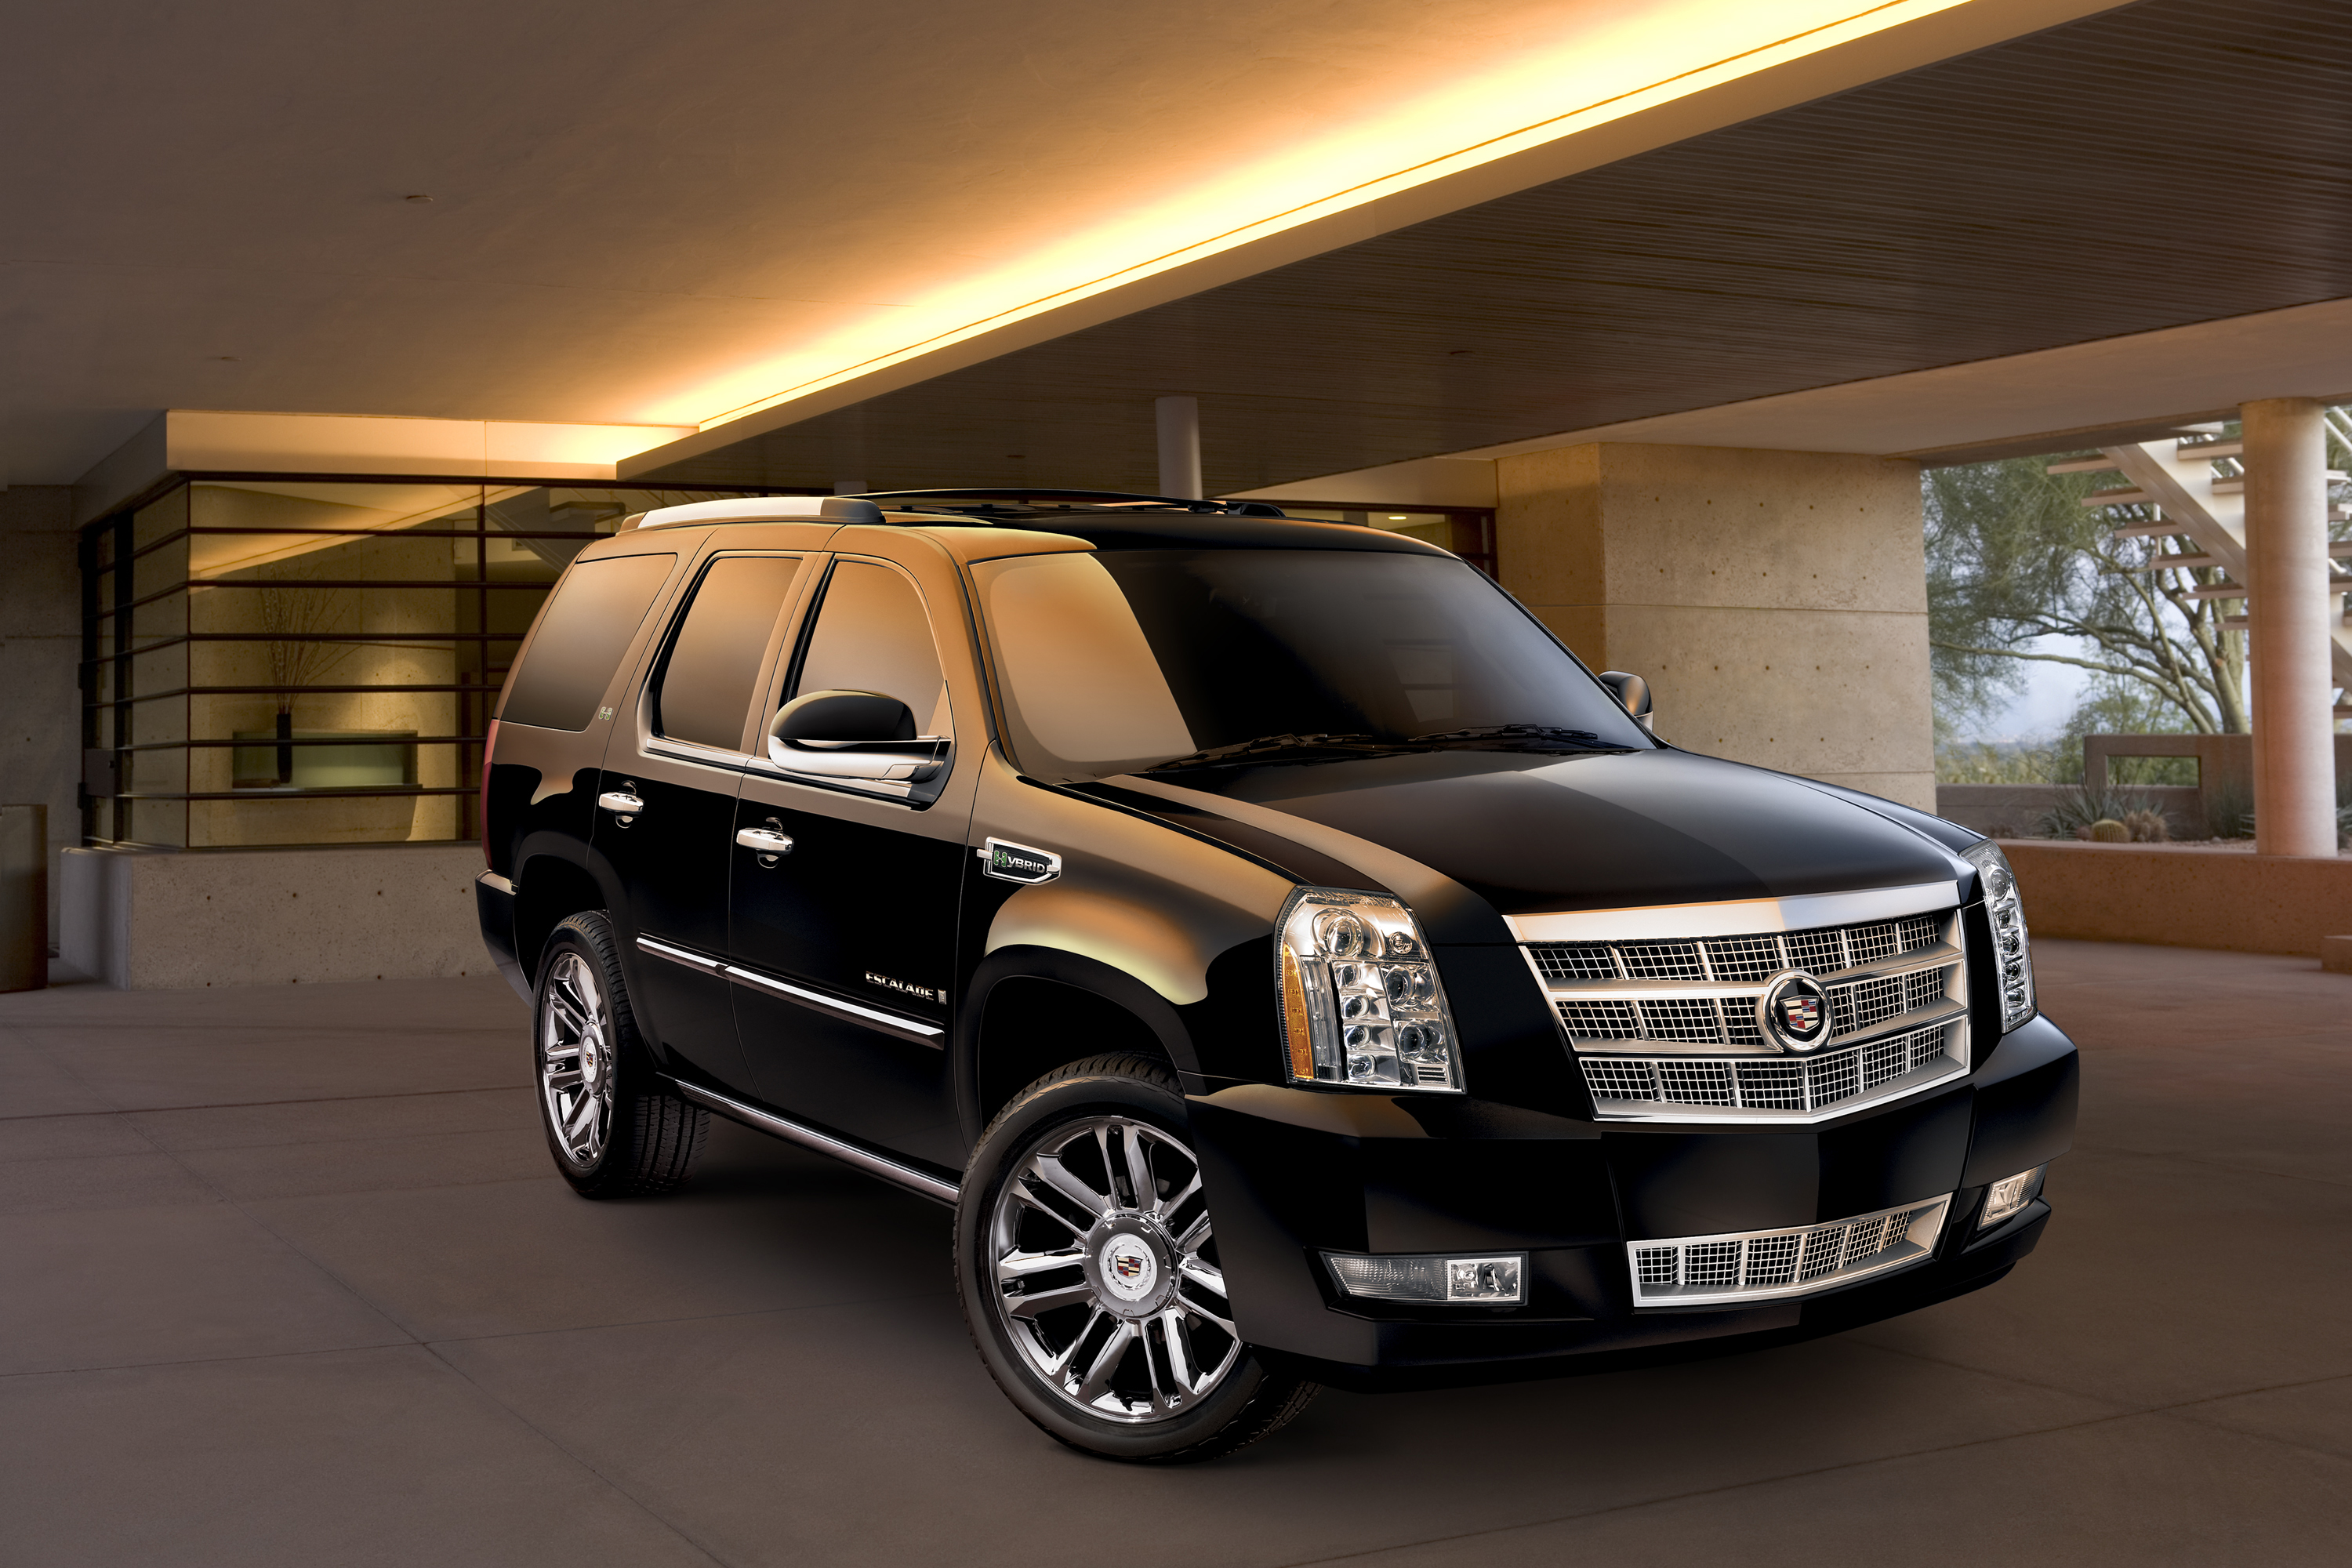 dealership robins used escalade carshot star new five warner auto accessories cadillac